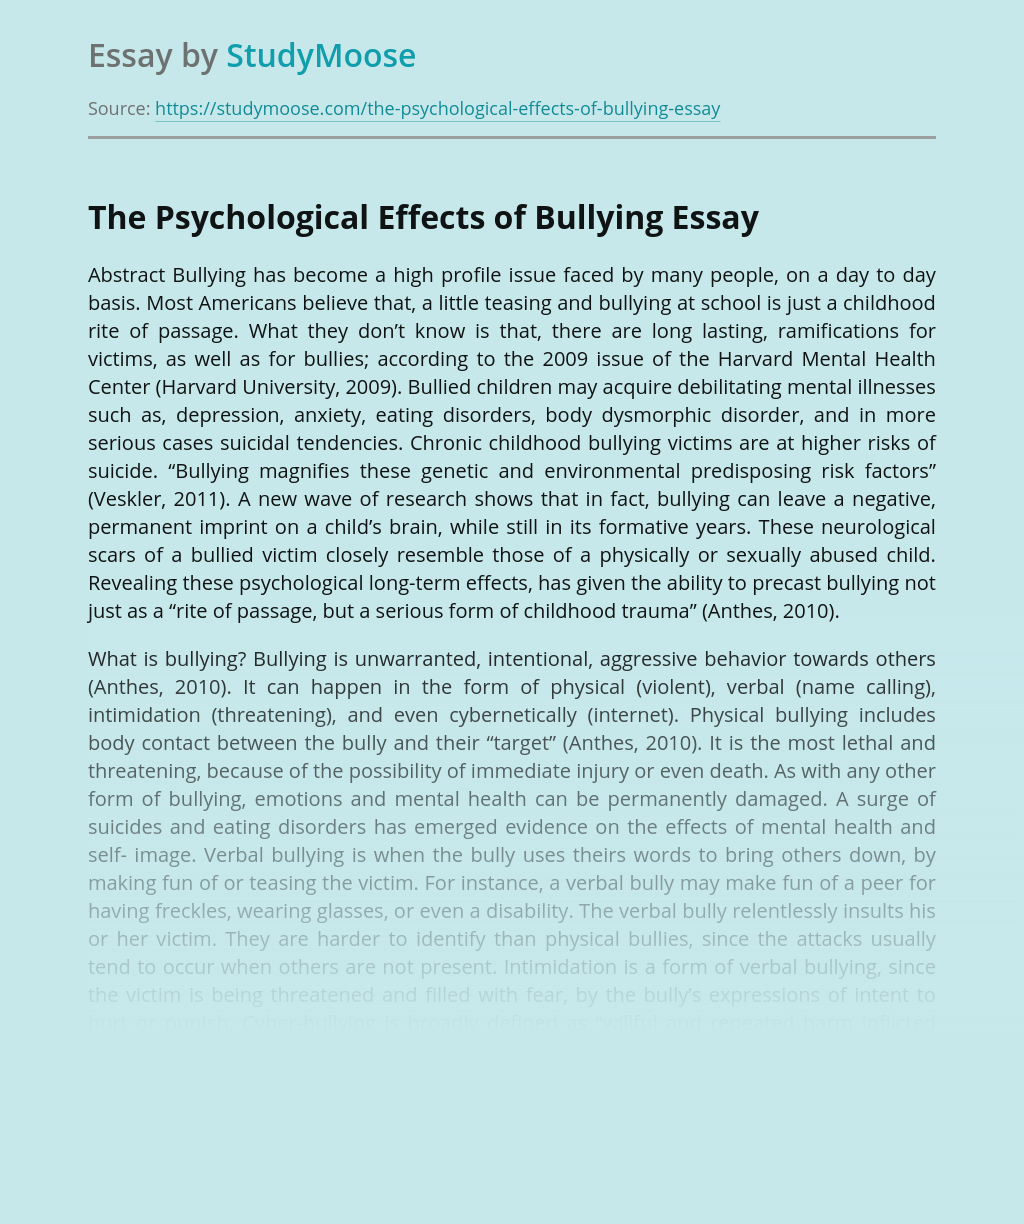 The Psychological Effects of Bullying